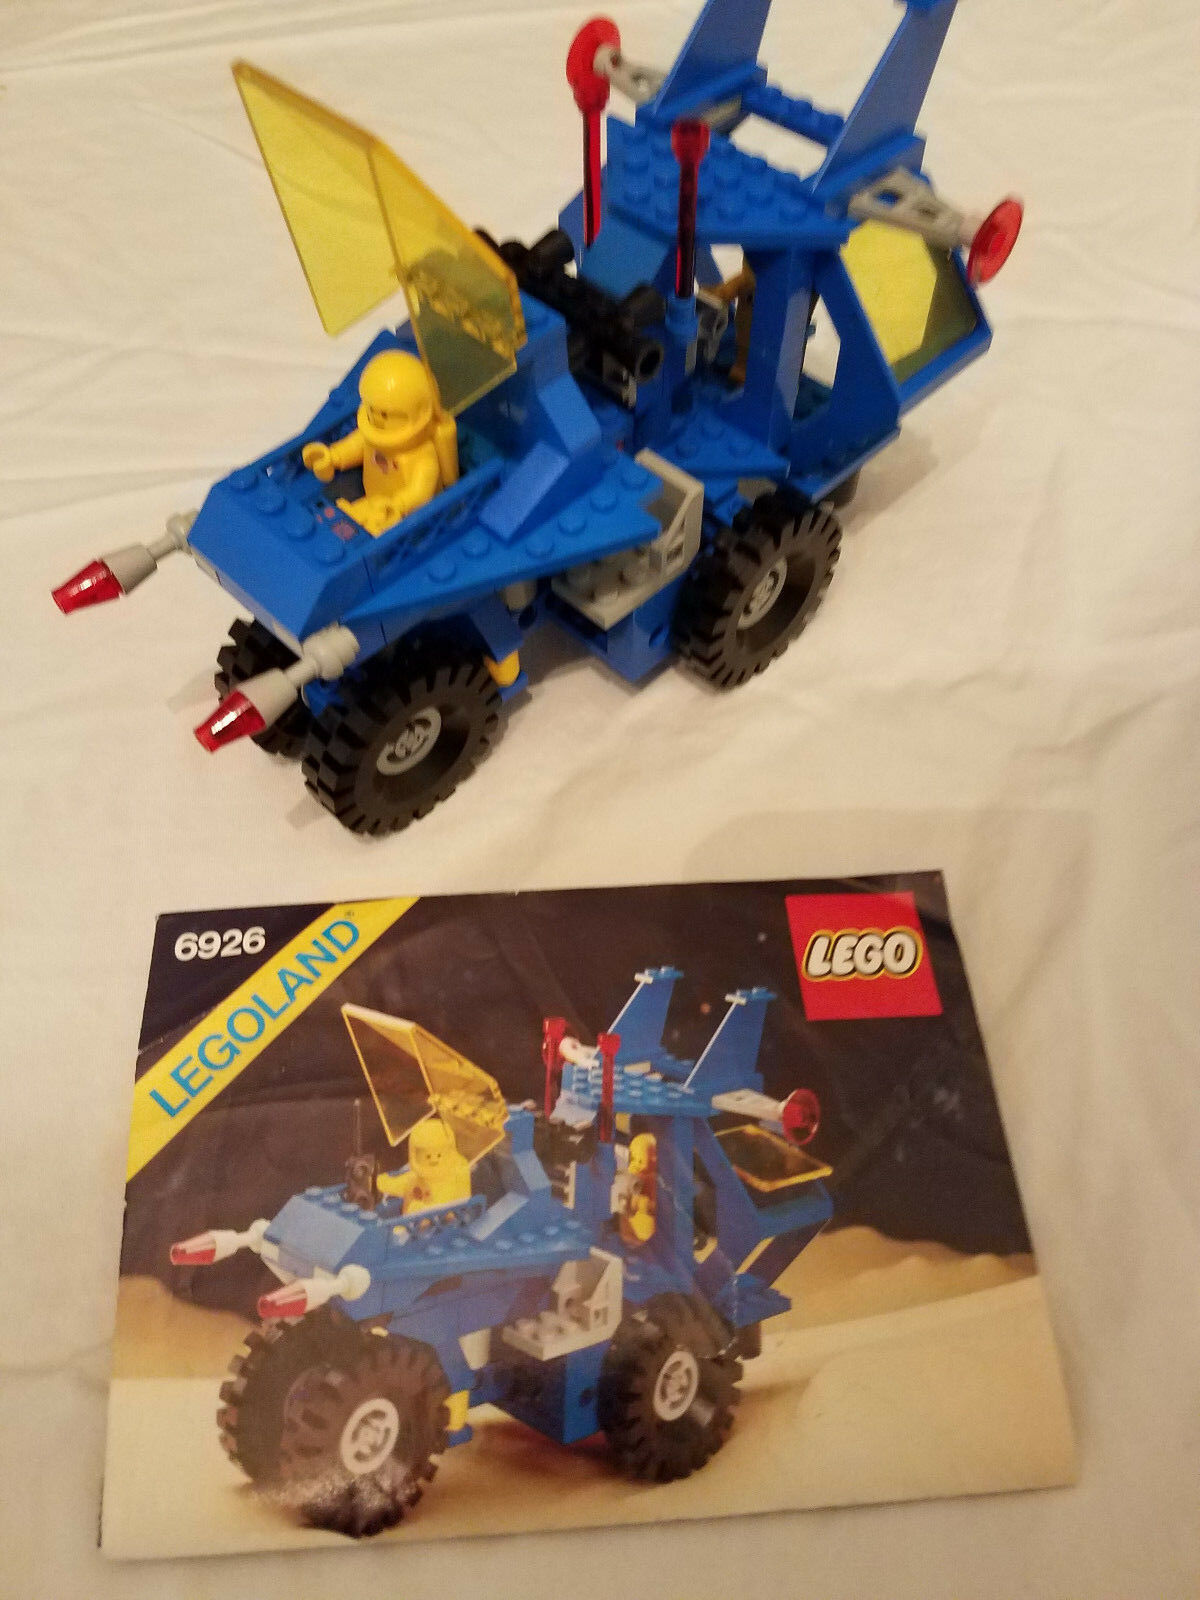 Vintage Lego Space Set   6926 Mobile Recovery Vehicle w/ minifigs  100% Complete